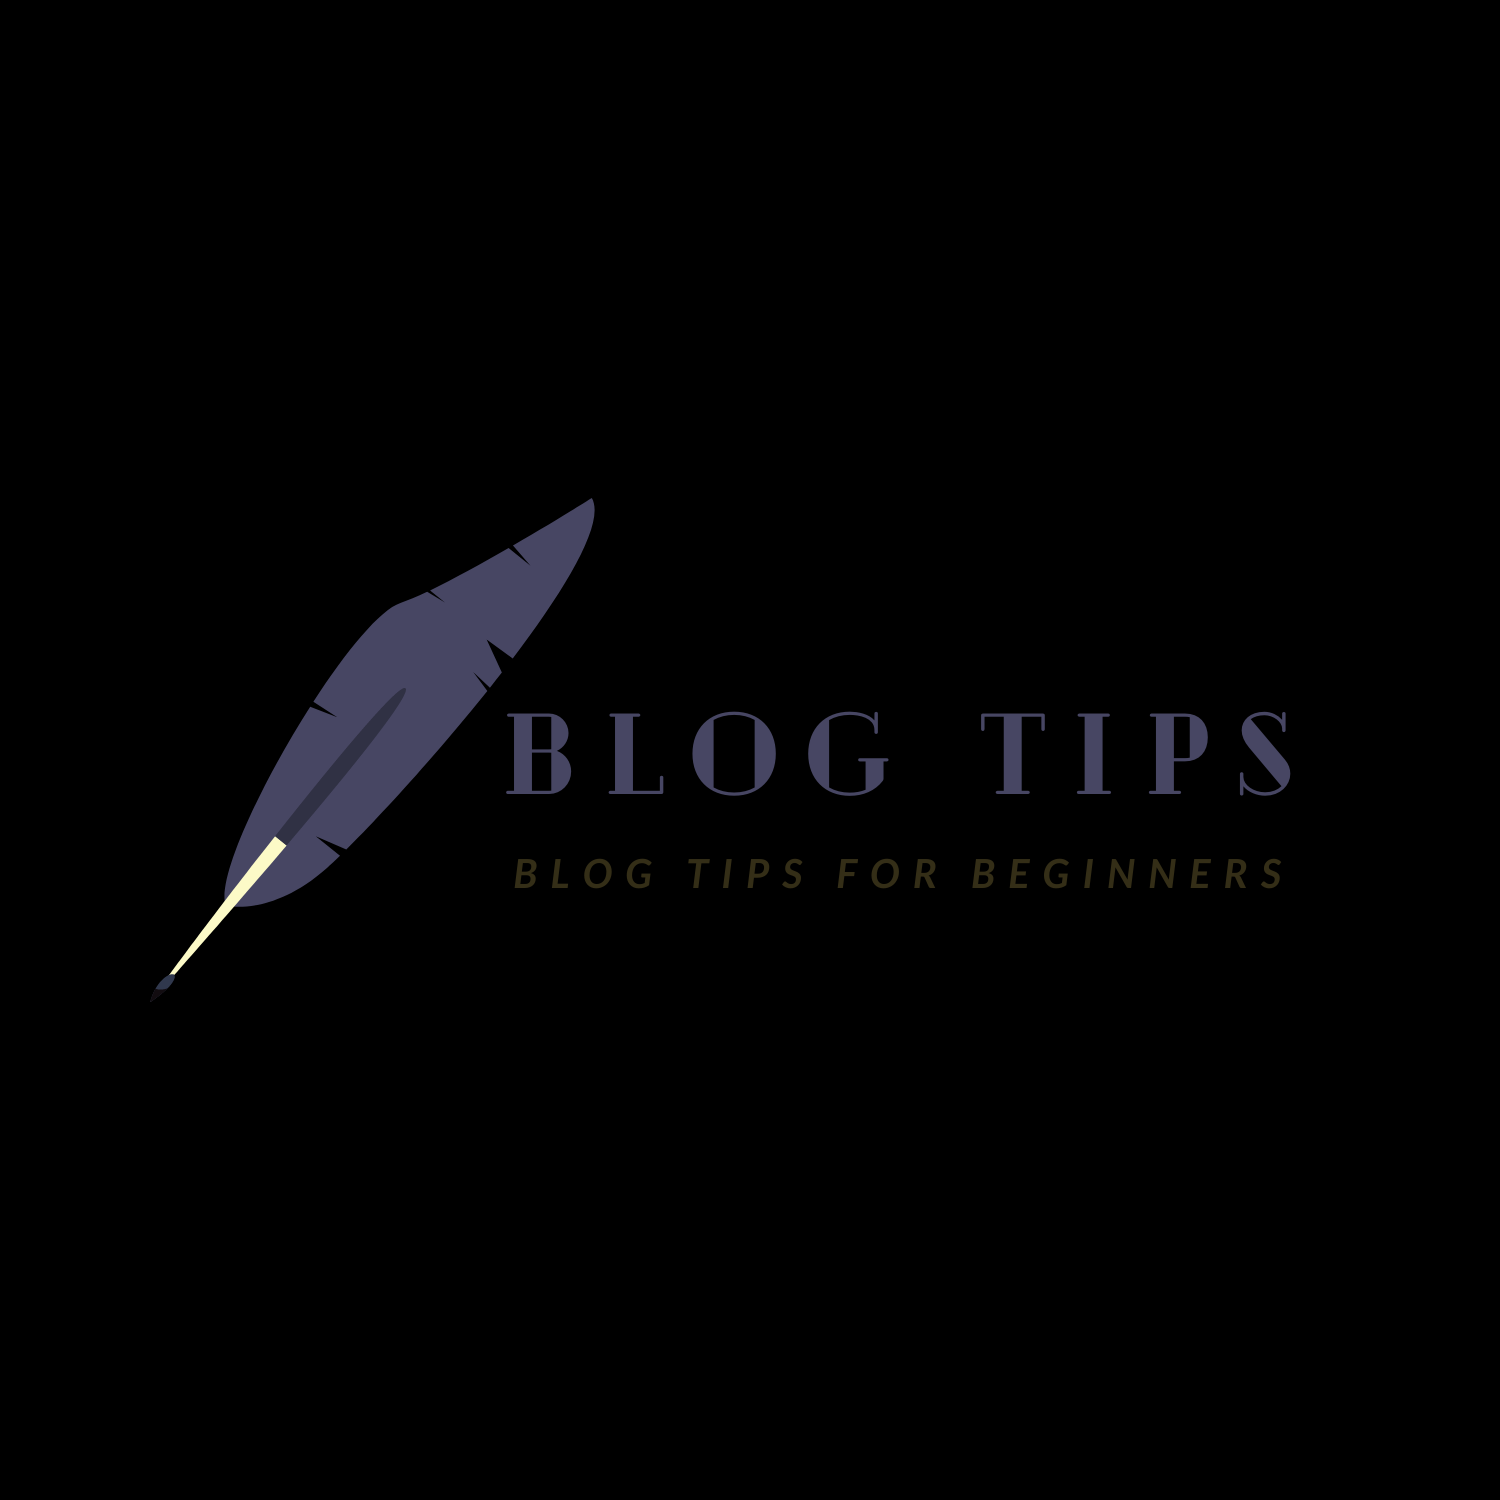 Strong Backlink / Guest Post On Blog Tips. Blogging & SEO Relevant Guest Post Feature